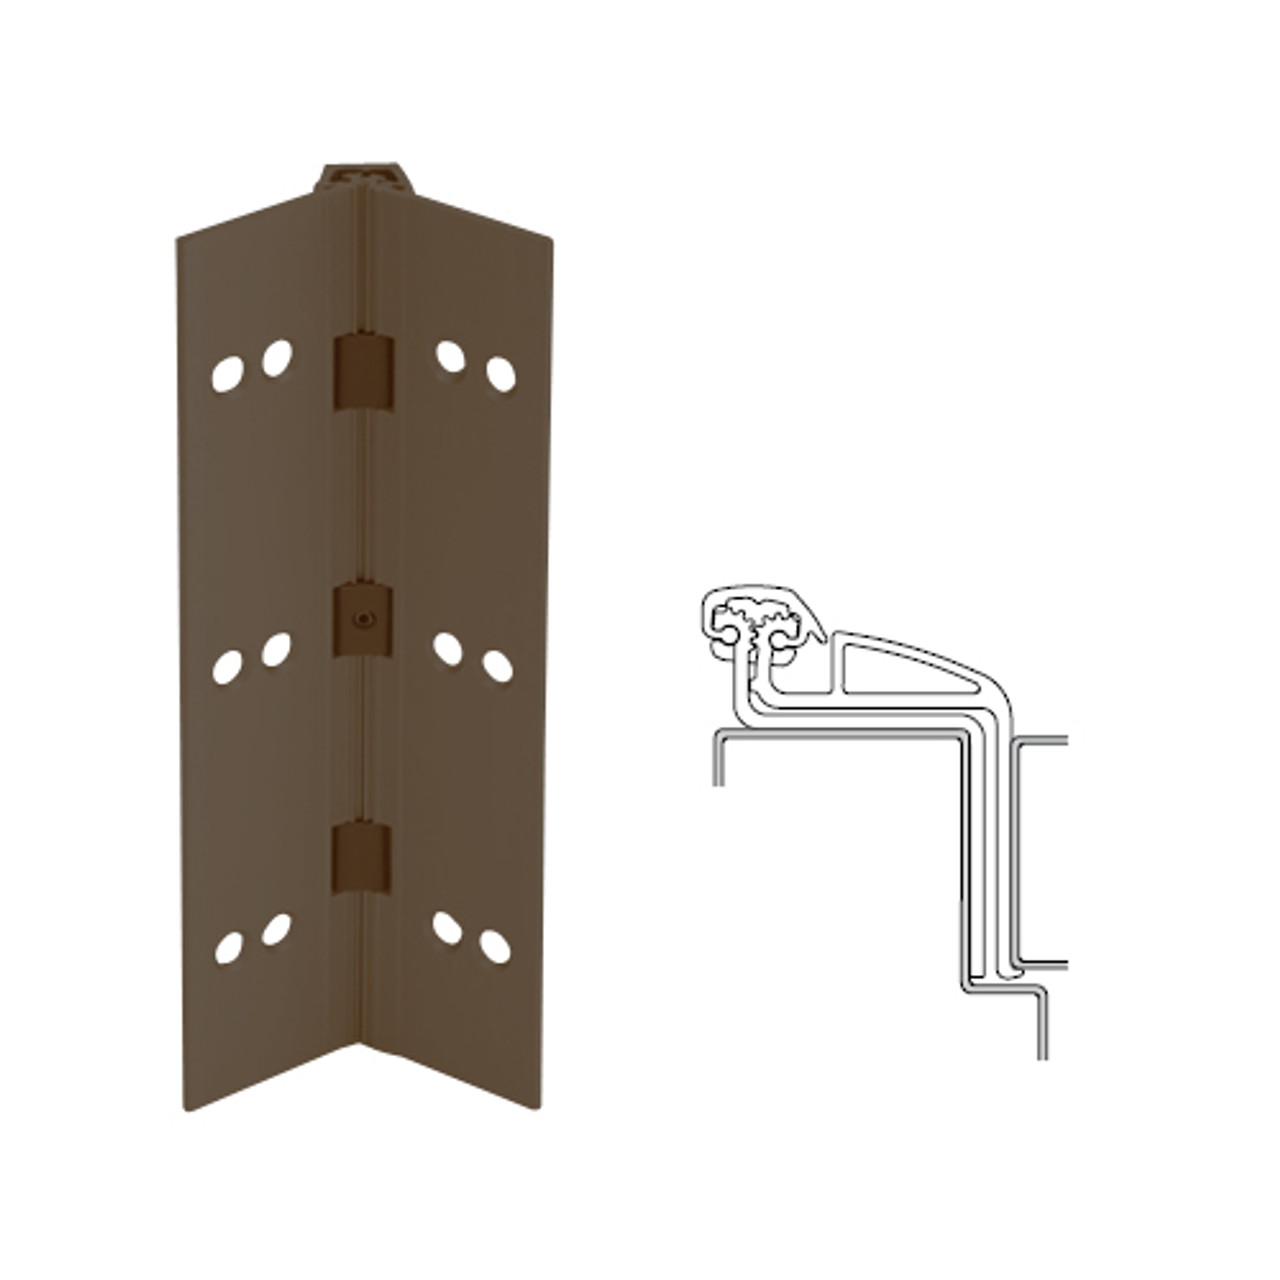 041XY-313AN-83-TFWD IVES Full Mortise Continuous Geared Hinges with Thread Forming Screws in Dark Bronze Anodized